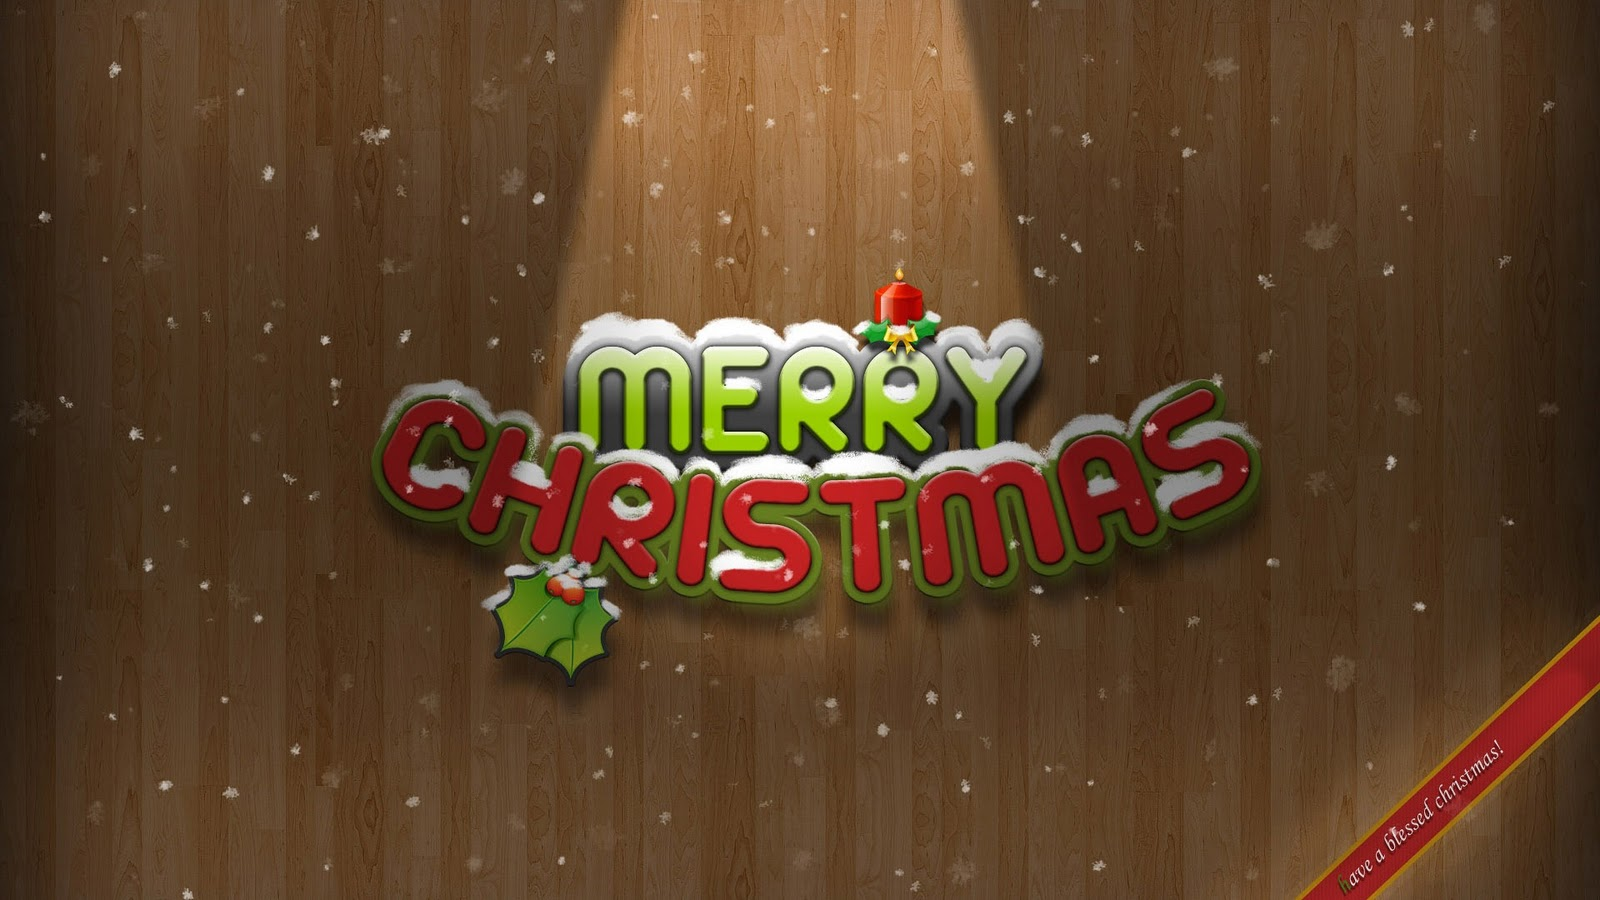 http://4.bp.blogspot.com/-9dJRSezg91U/TyHFea_X9fI/AAAAAAAADZI/Mn2bS8epDig/s1600/Best-top-desktop-christmas-wallpapers-hd-christmas-wallpaper-picture-image-photo-1.jpg